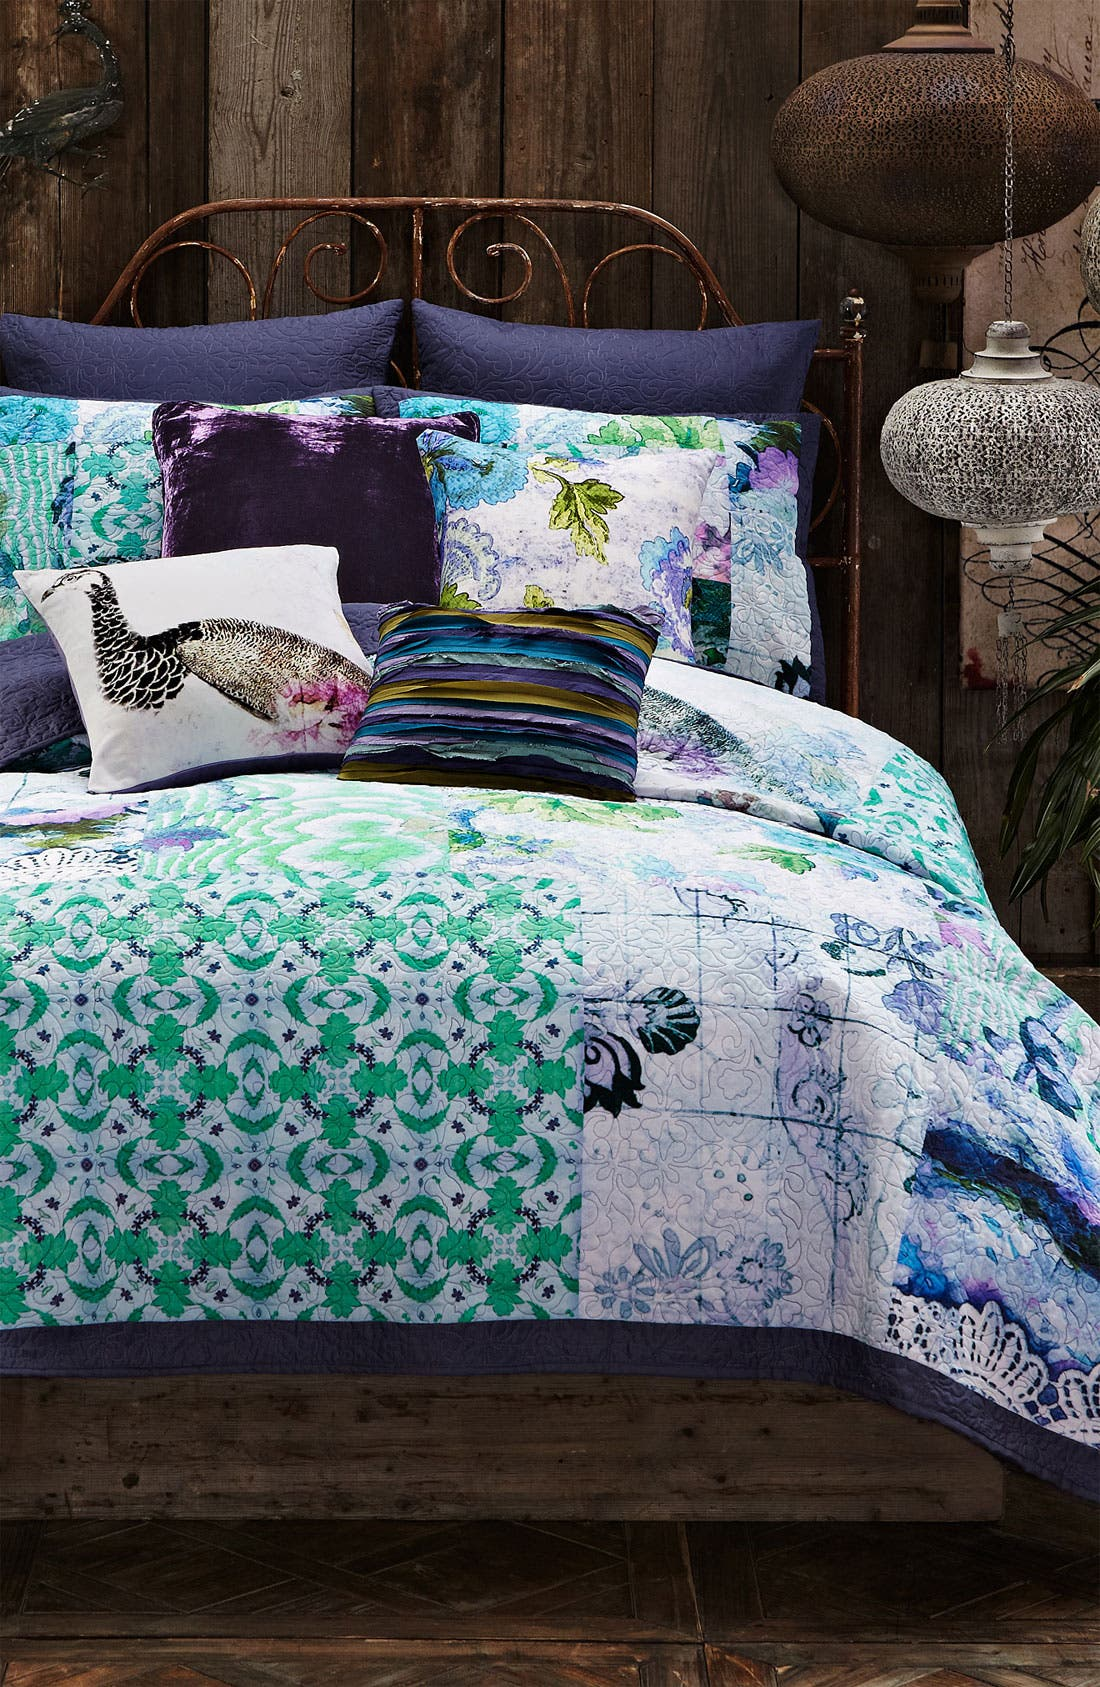 Alternate Image 1 Selected - Tracy Porter® For Poetic Wanderlust® 'Ardienne' Quilt